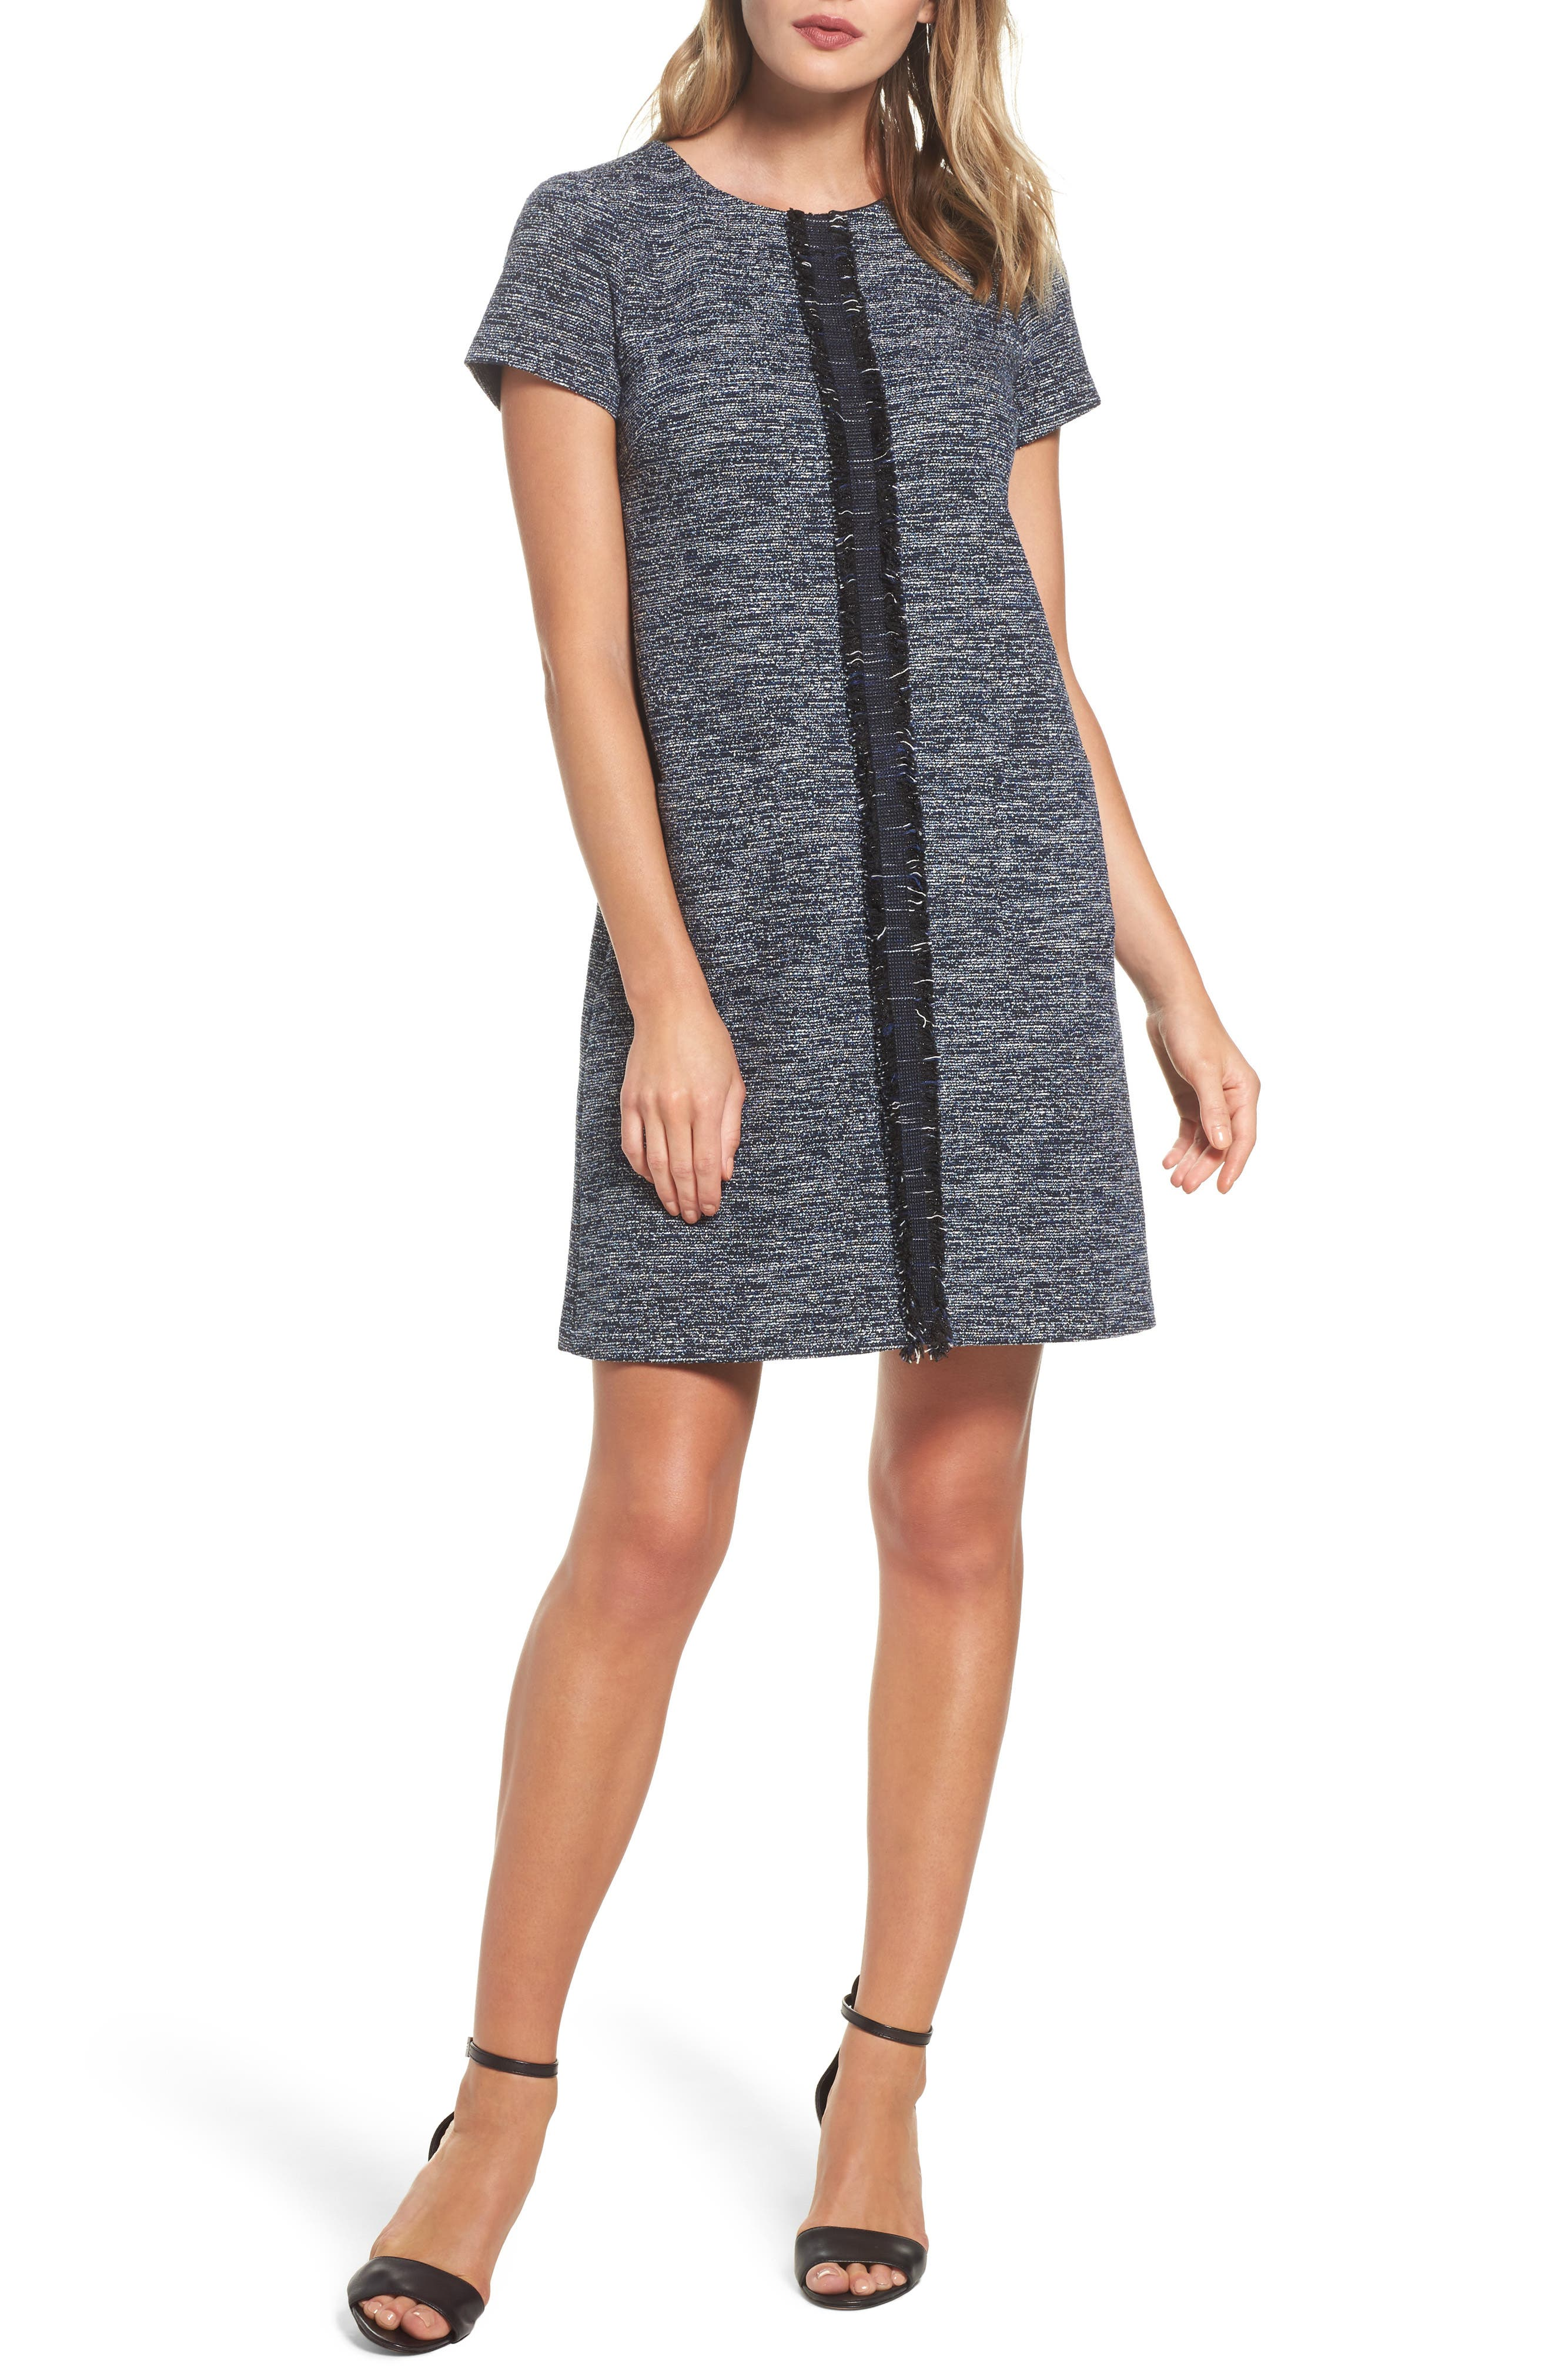 Adrianna Papell Knit Tweed Shift Dress